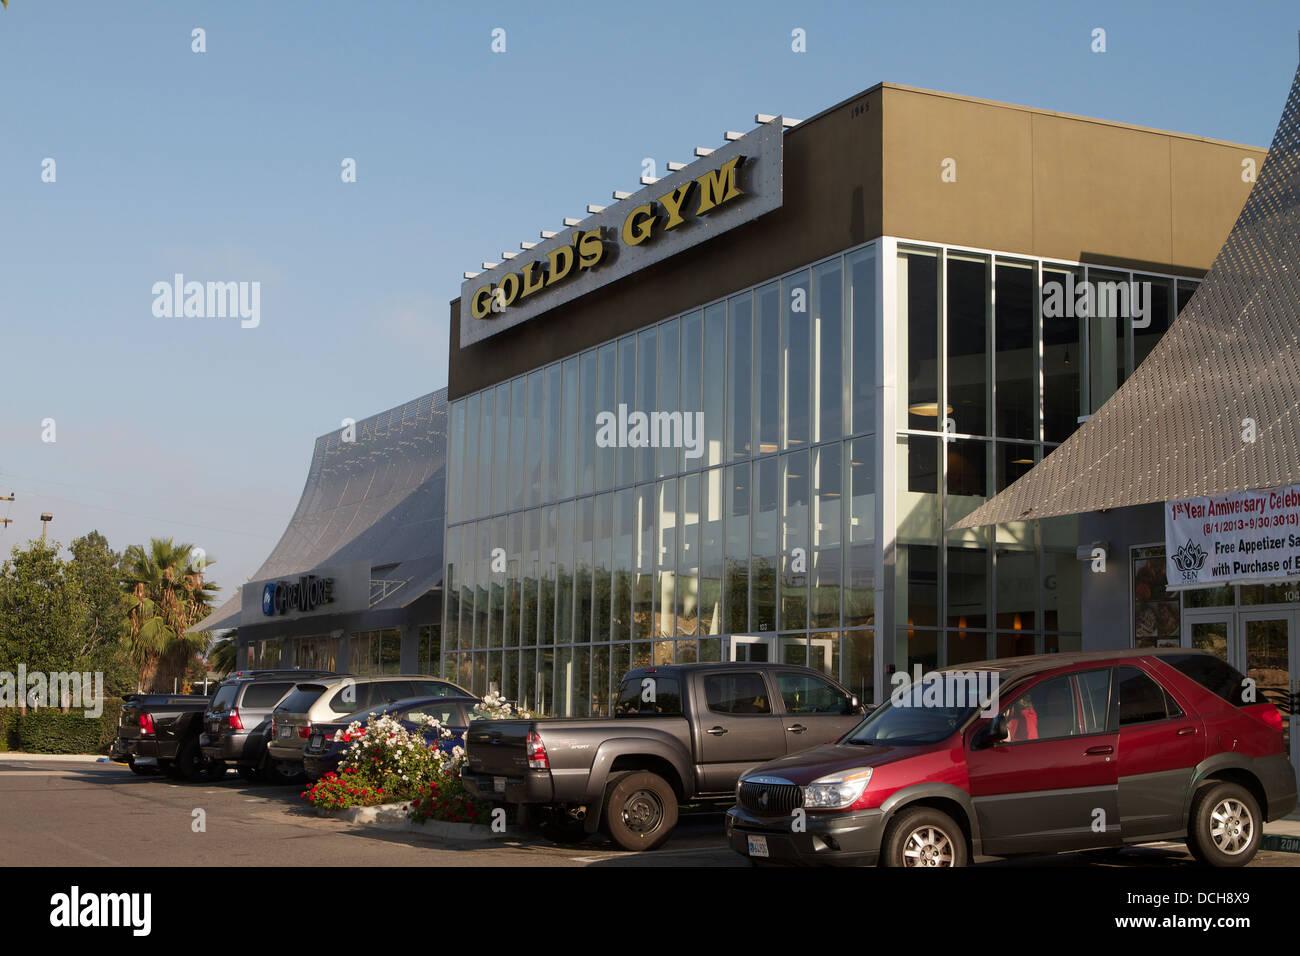 A outside view of Golds Gym fitness center in Santa Ana ...